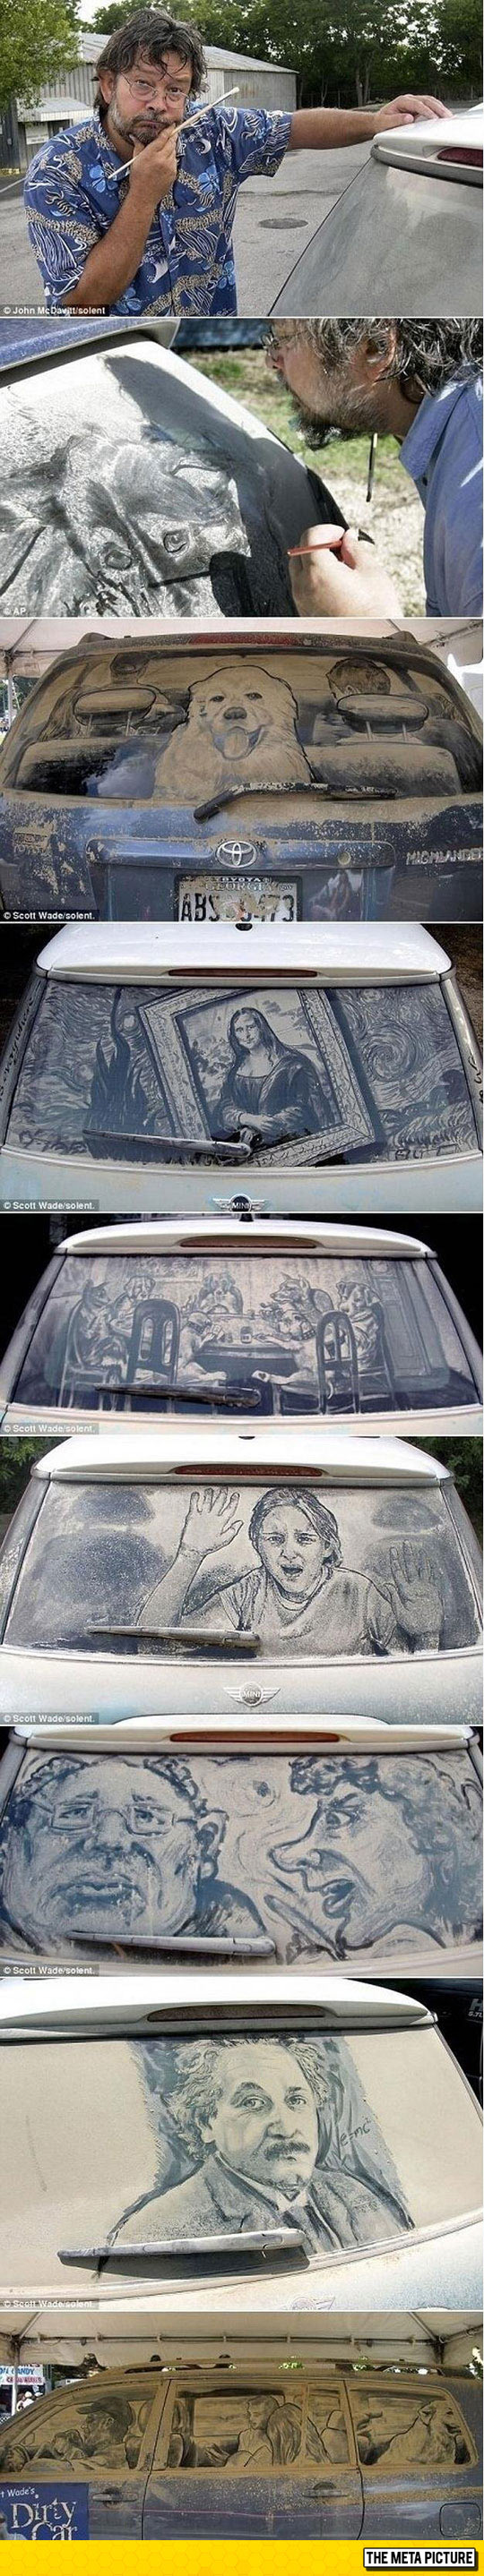 cool-art-dirty-car-windows